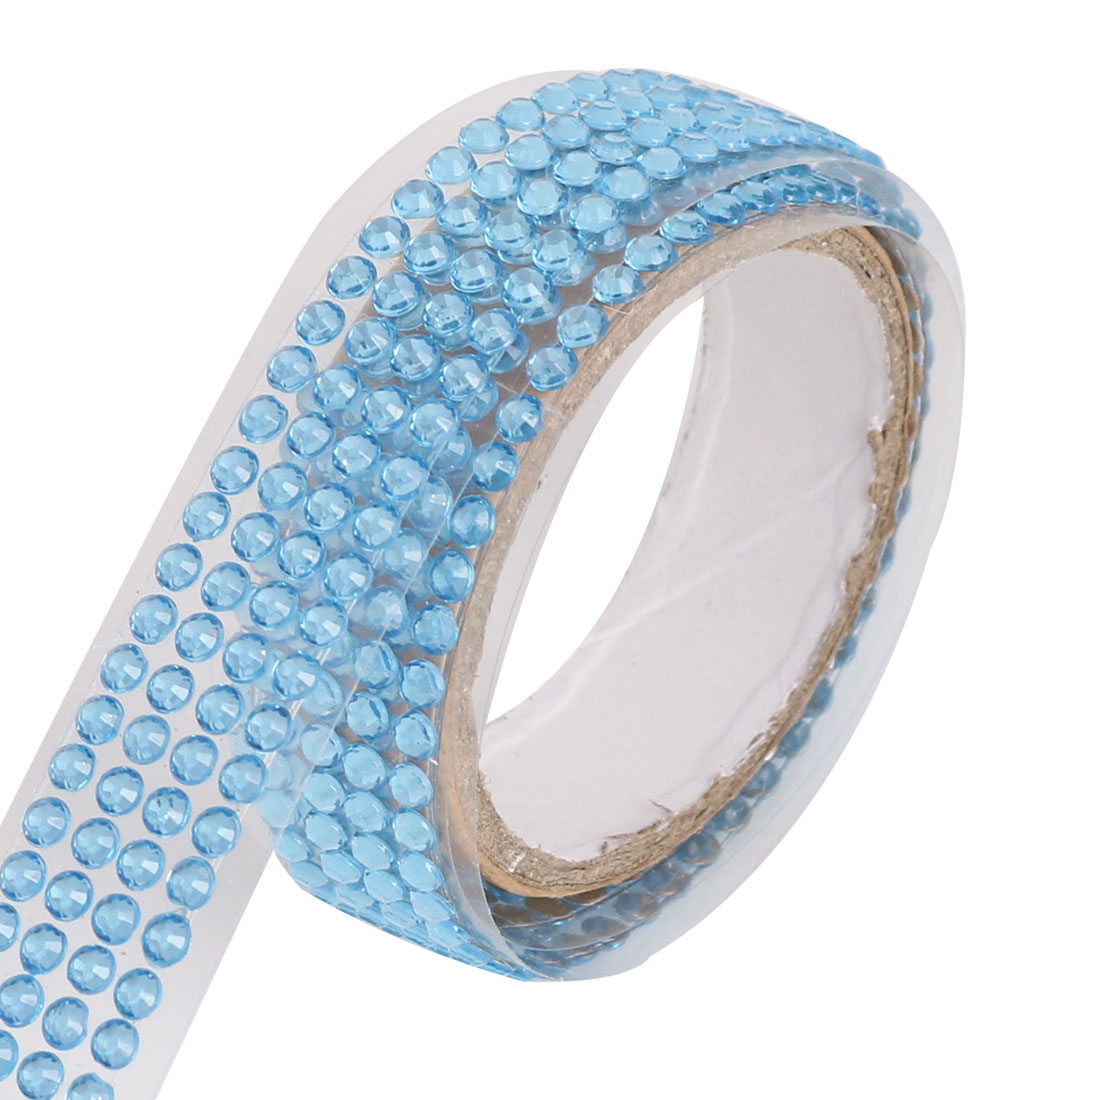 Rhinestone Decoration Sticker Scrapbook DIY Craft Decorative Sticky Tape Roll Blue